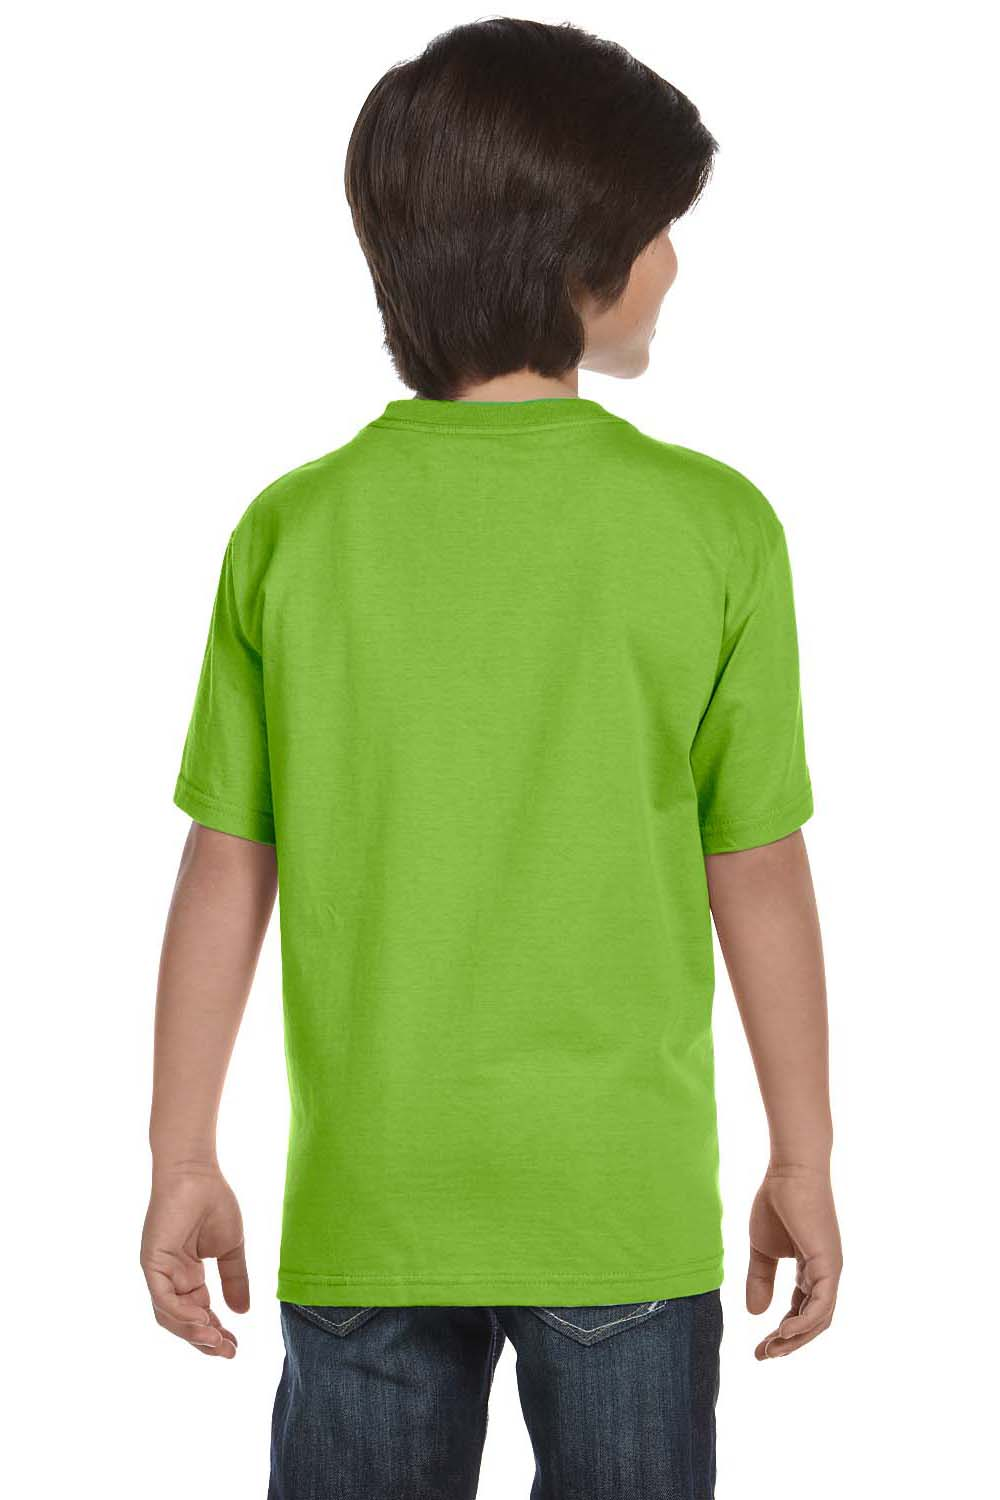 Hanes 5380 Youth Beefy-T Short Sleeve Crewneck T-Shirt Lime Green Back